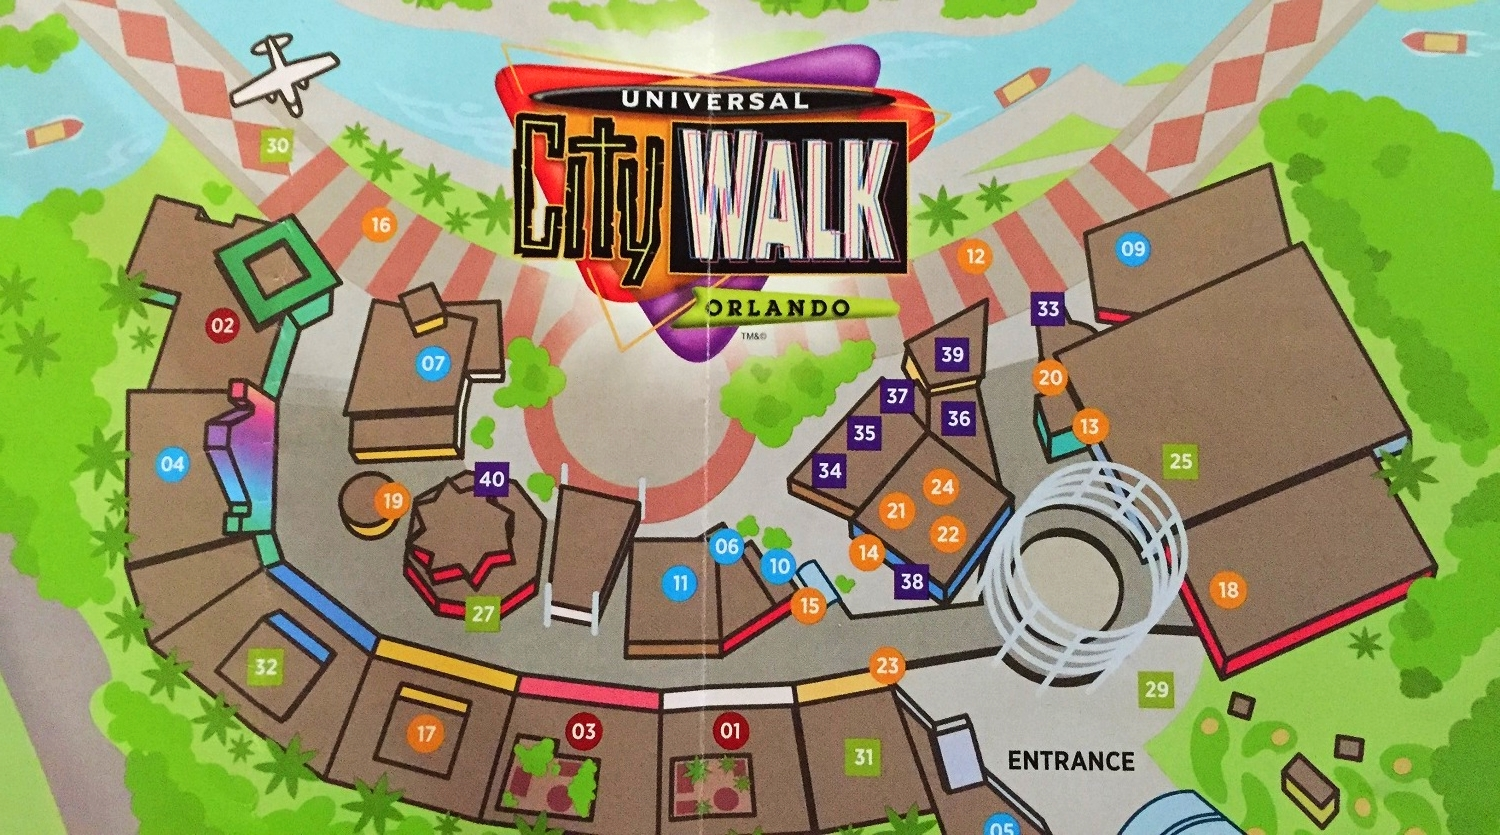 CityWalk's Rising Star is number 27 on this CityWalk map.